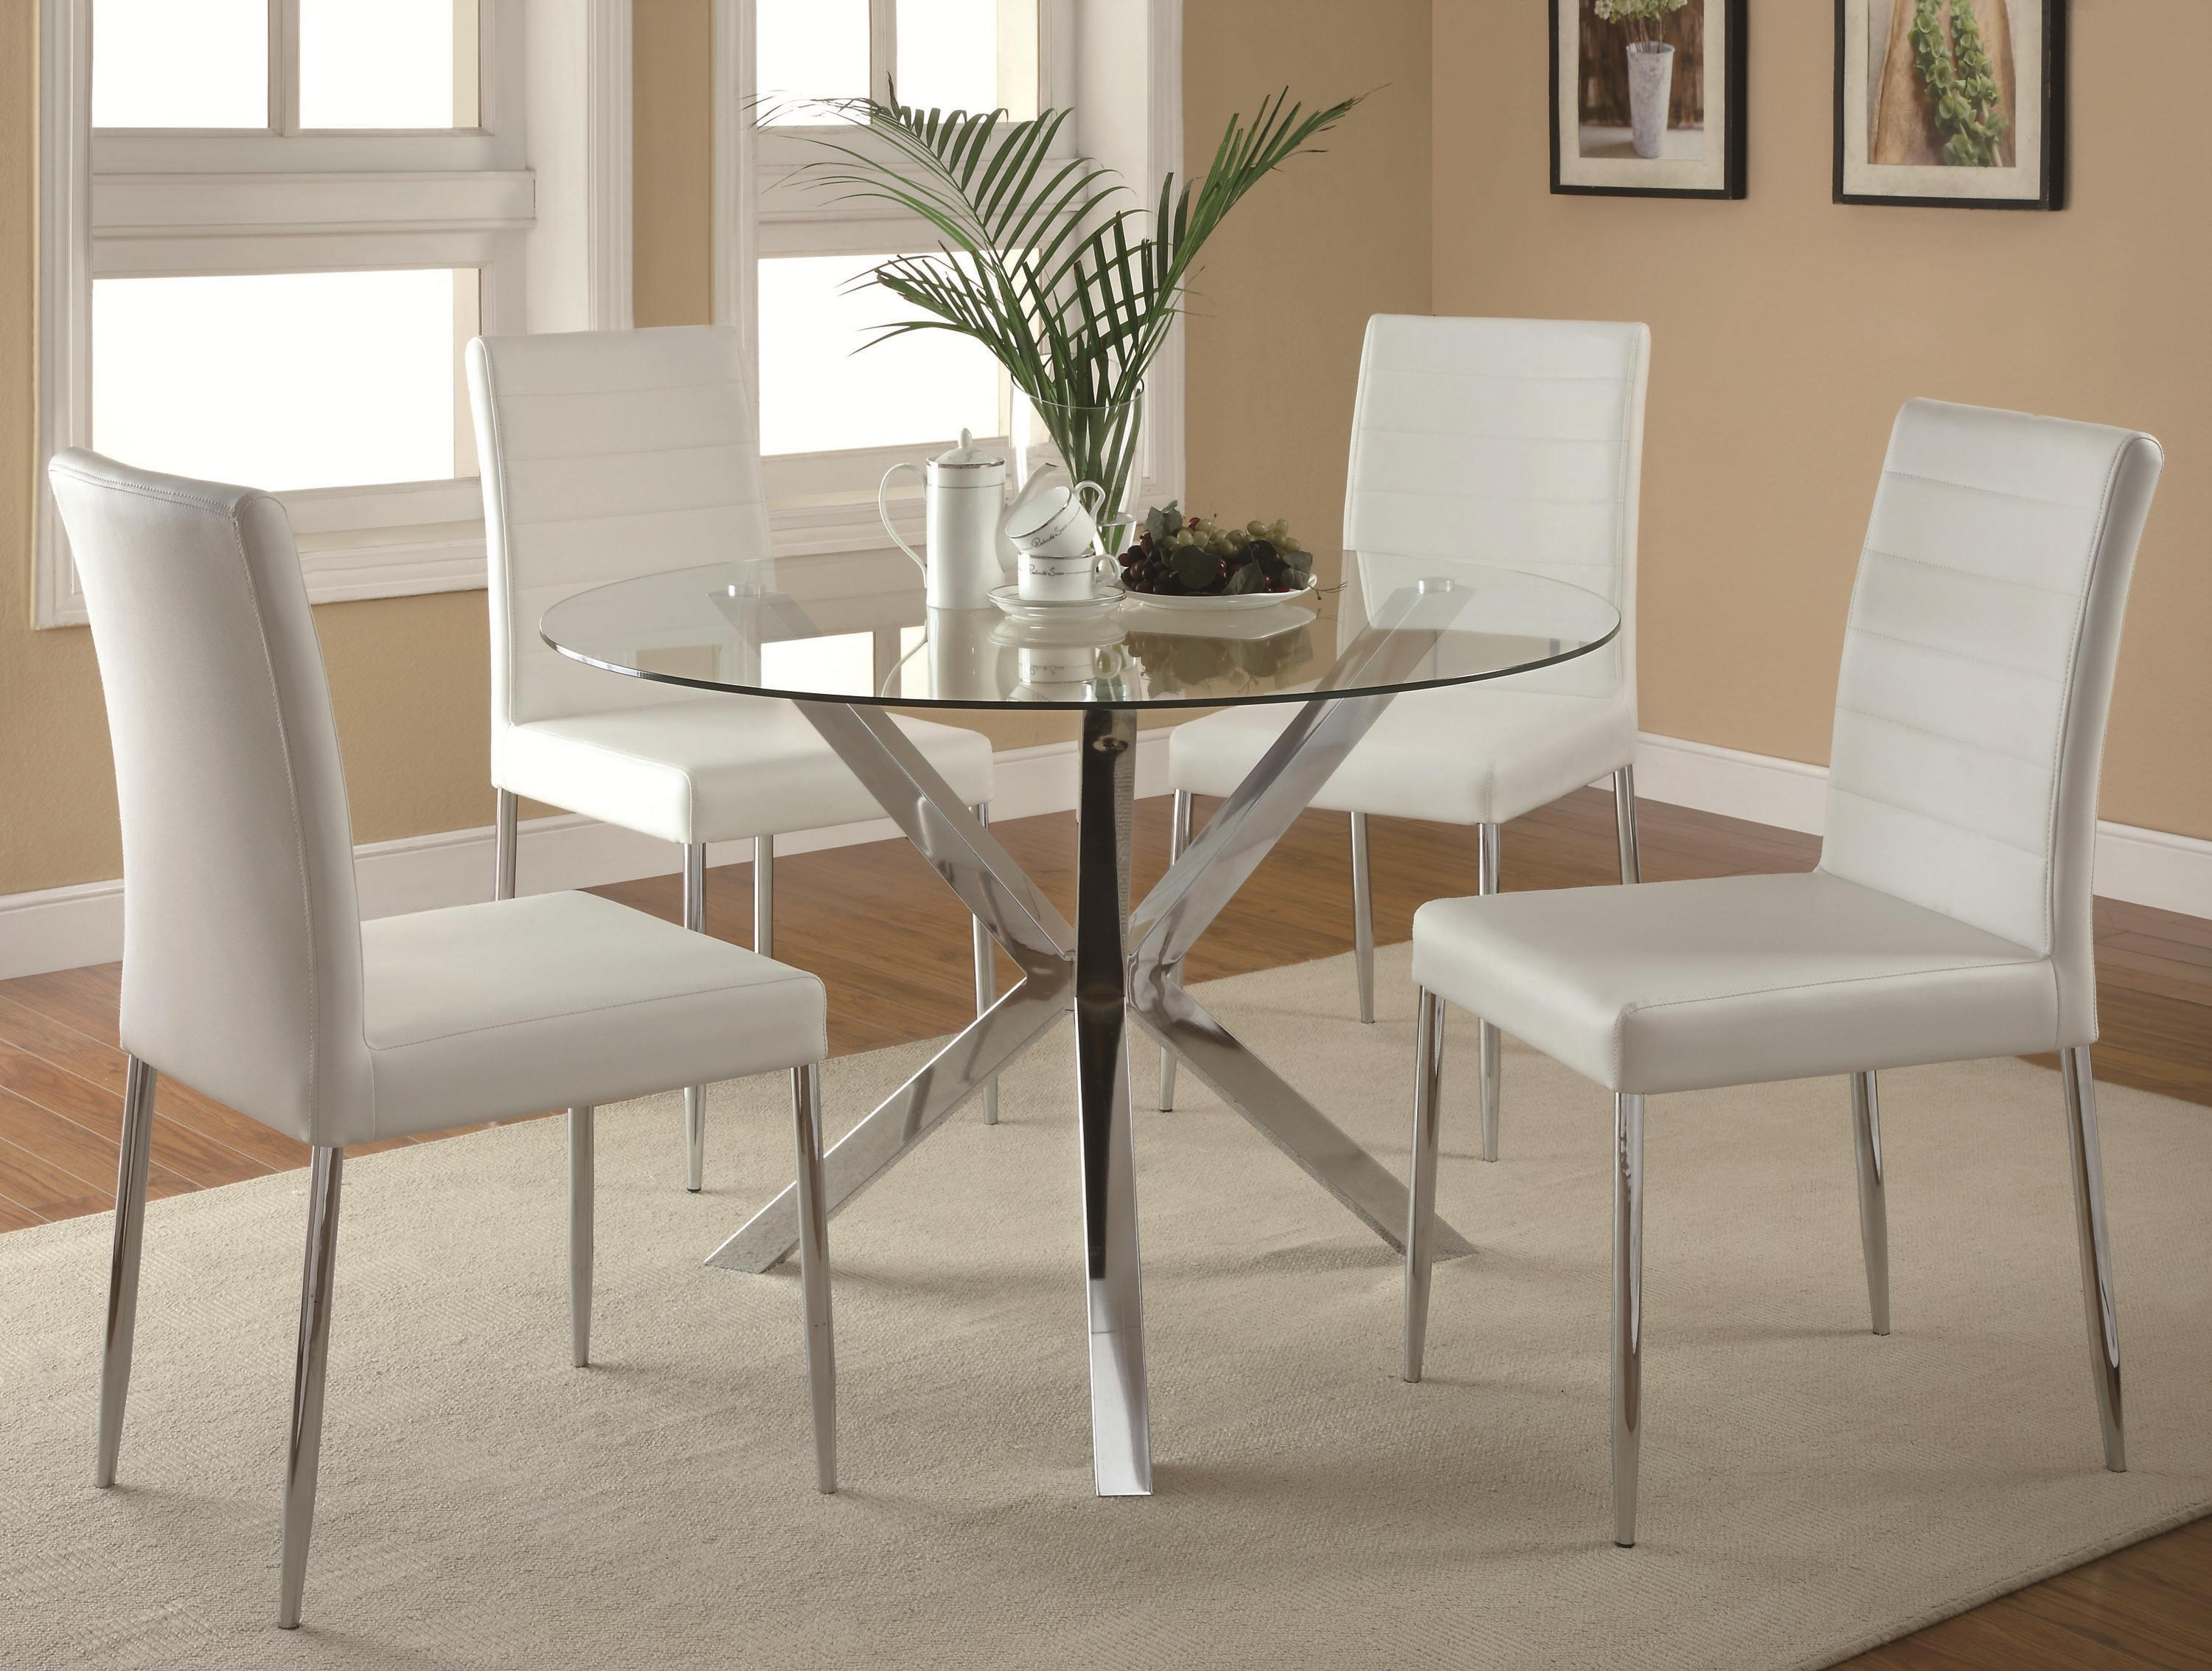 Vance 5-Piece Table & Chair Set by Coaster at Value City Furniture